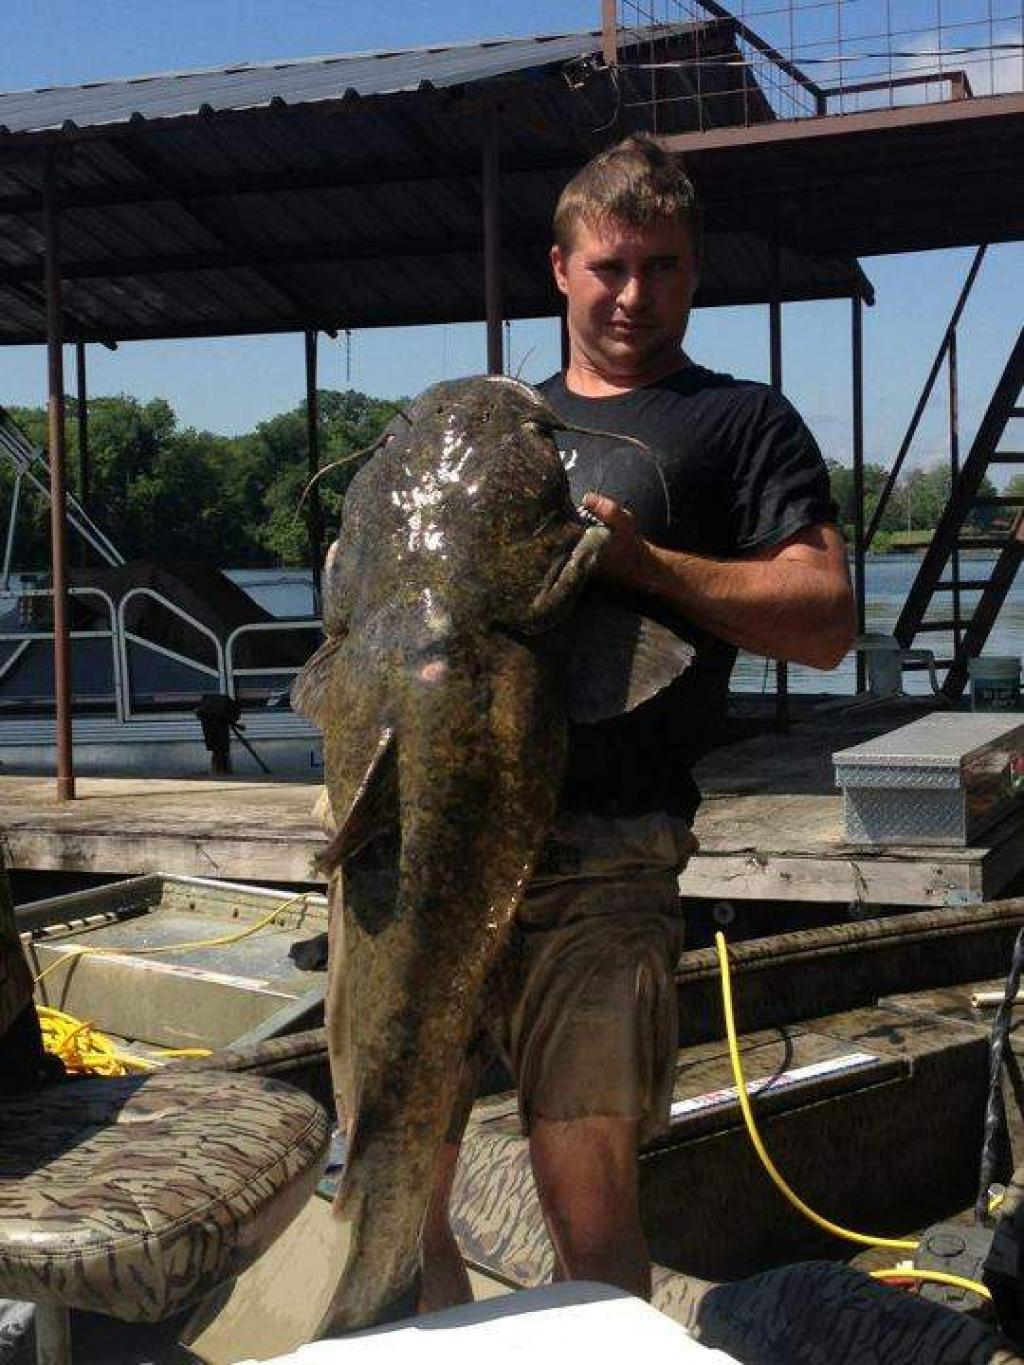 Fishing noodled...Flathead catfish caught in La